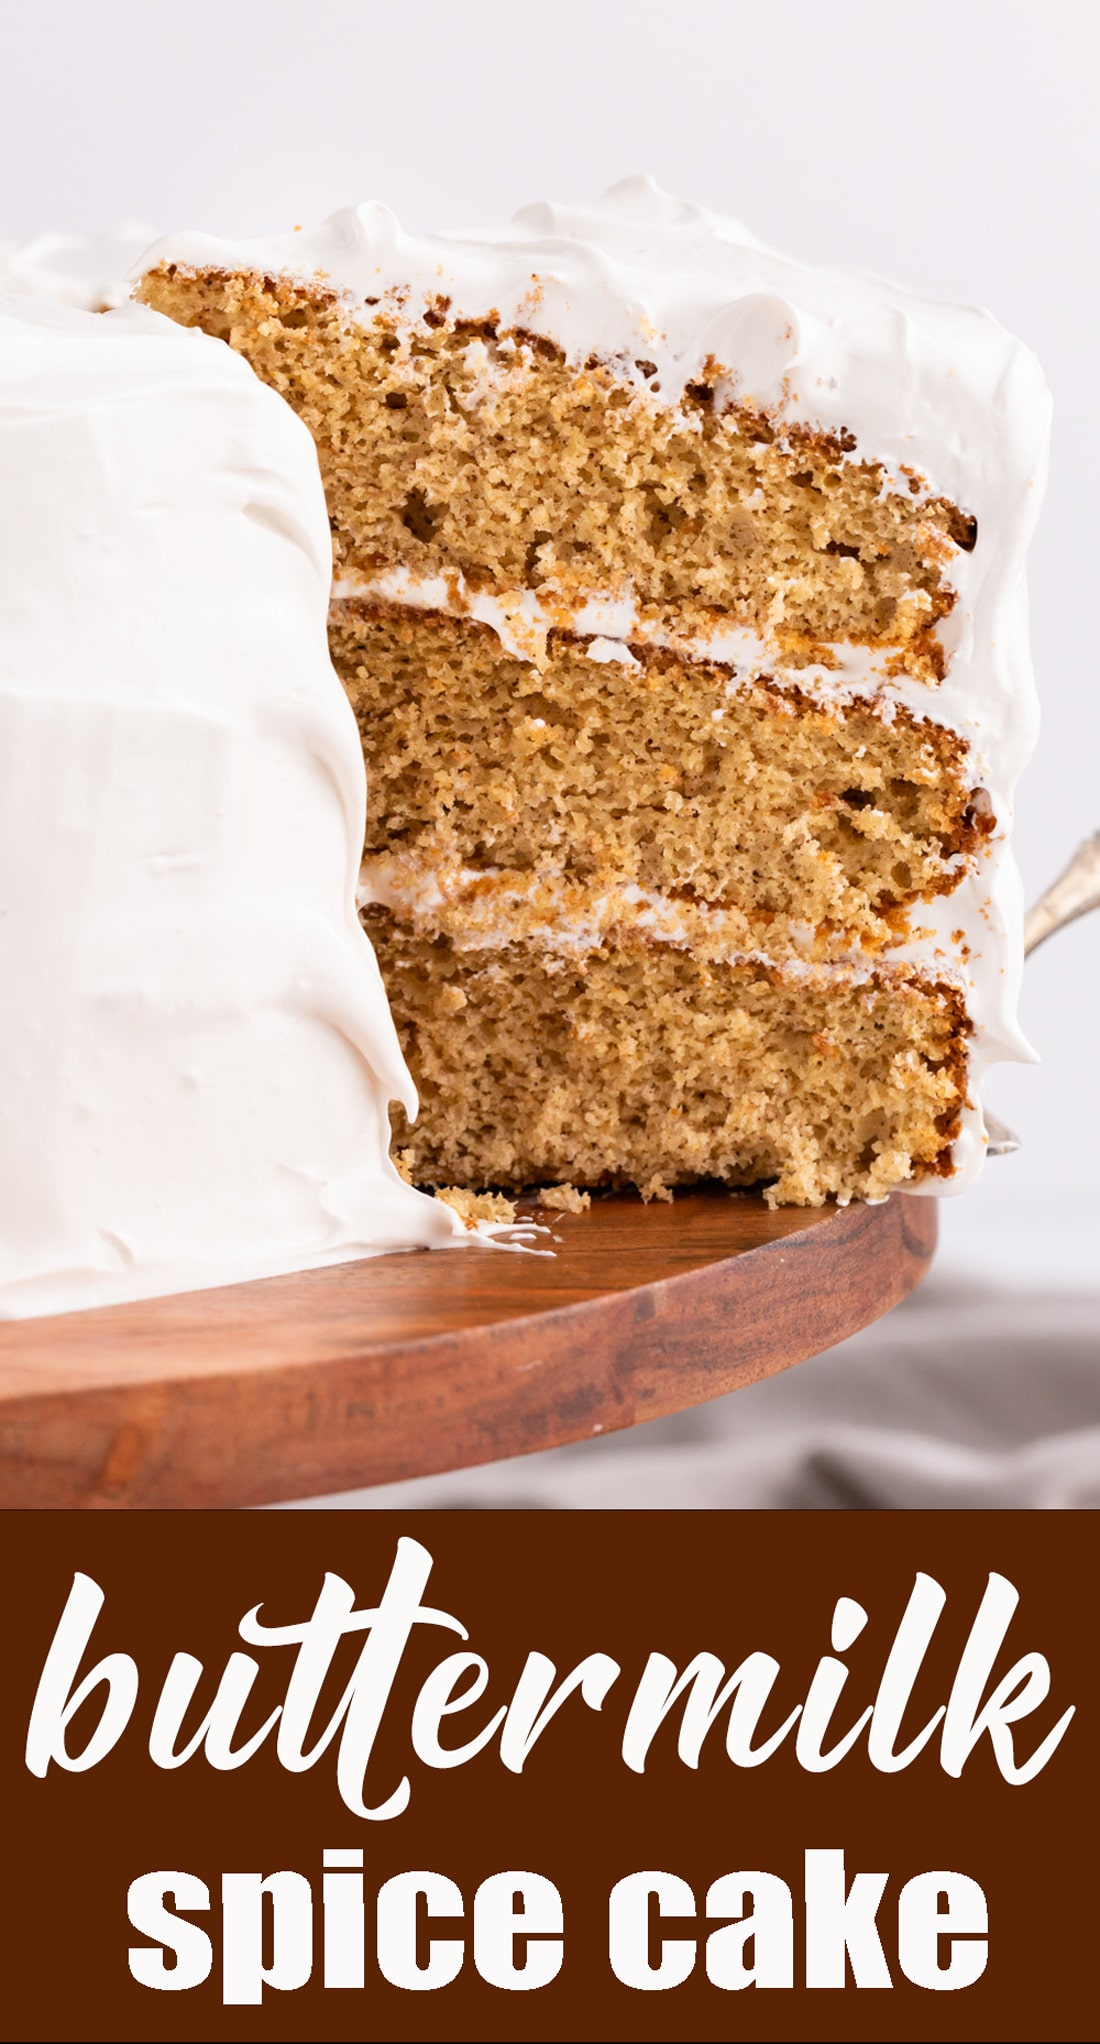 This Buttermilk Spice Cake gets its kick from cinnamon, cloves and black pepper. It has three layers of cake with seafoam frosting in between and 100% from scratch. via @thebestcakerecipes